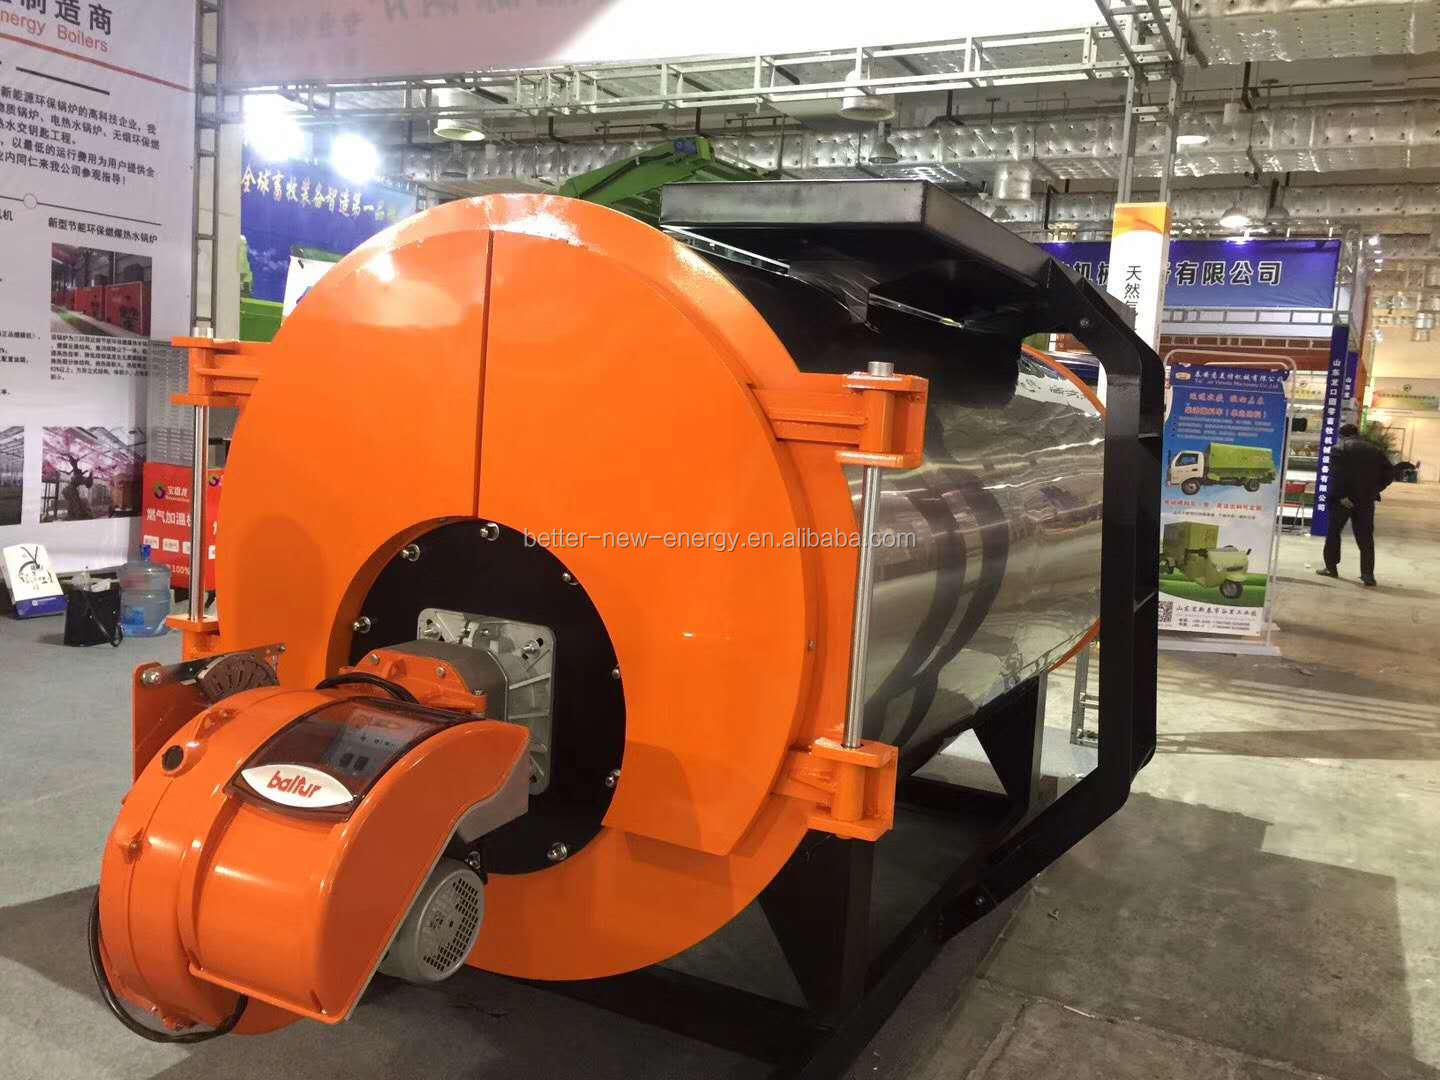 Steam Boilers India | Gas Fired Boilers | Boilers For